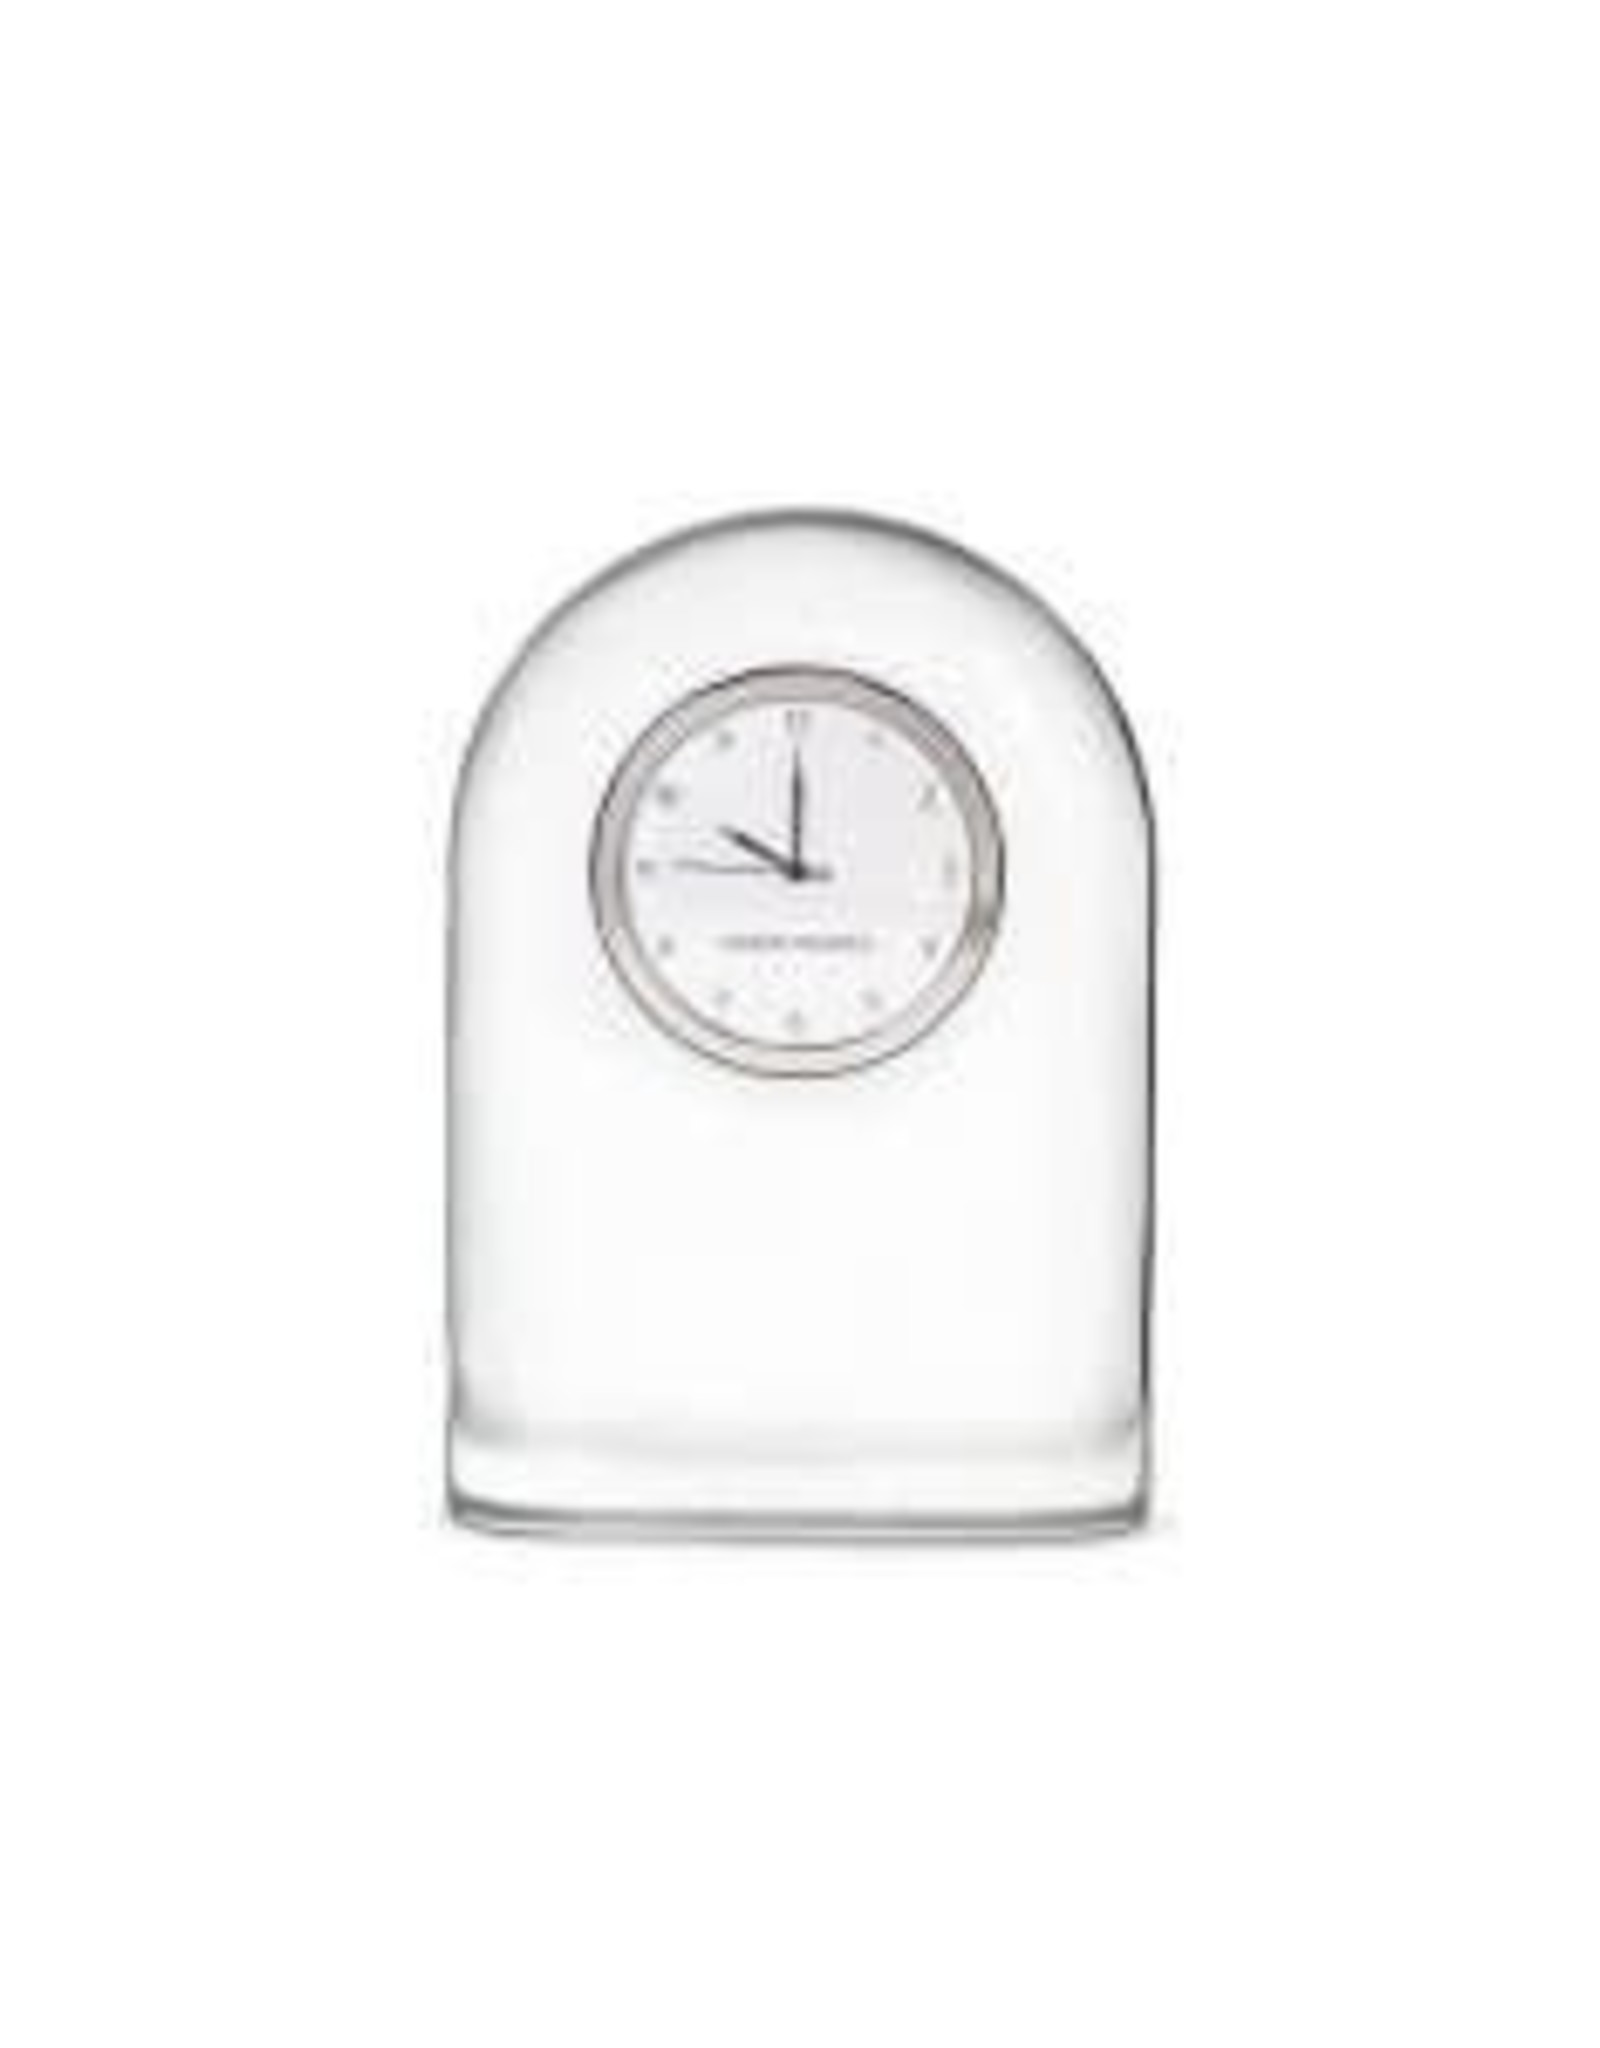 Simon Pearce Barre Clock in Gift Box